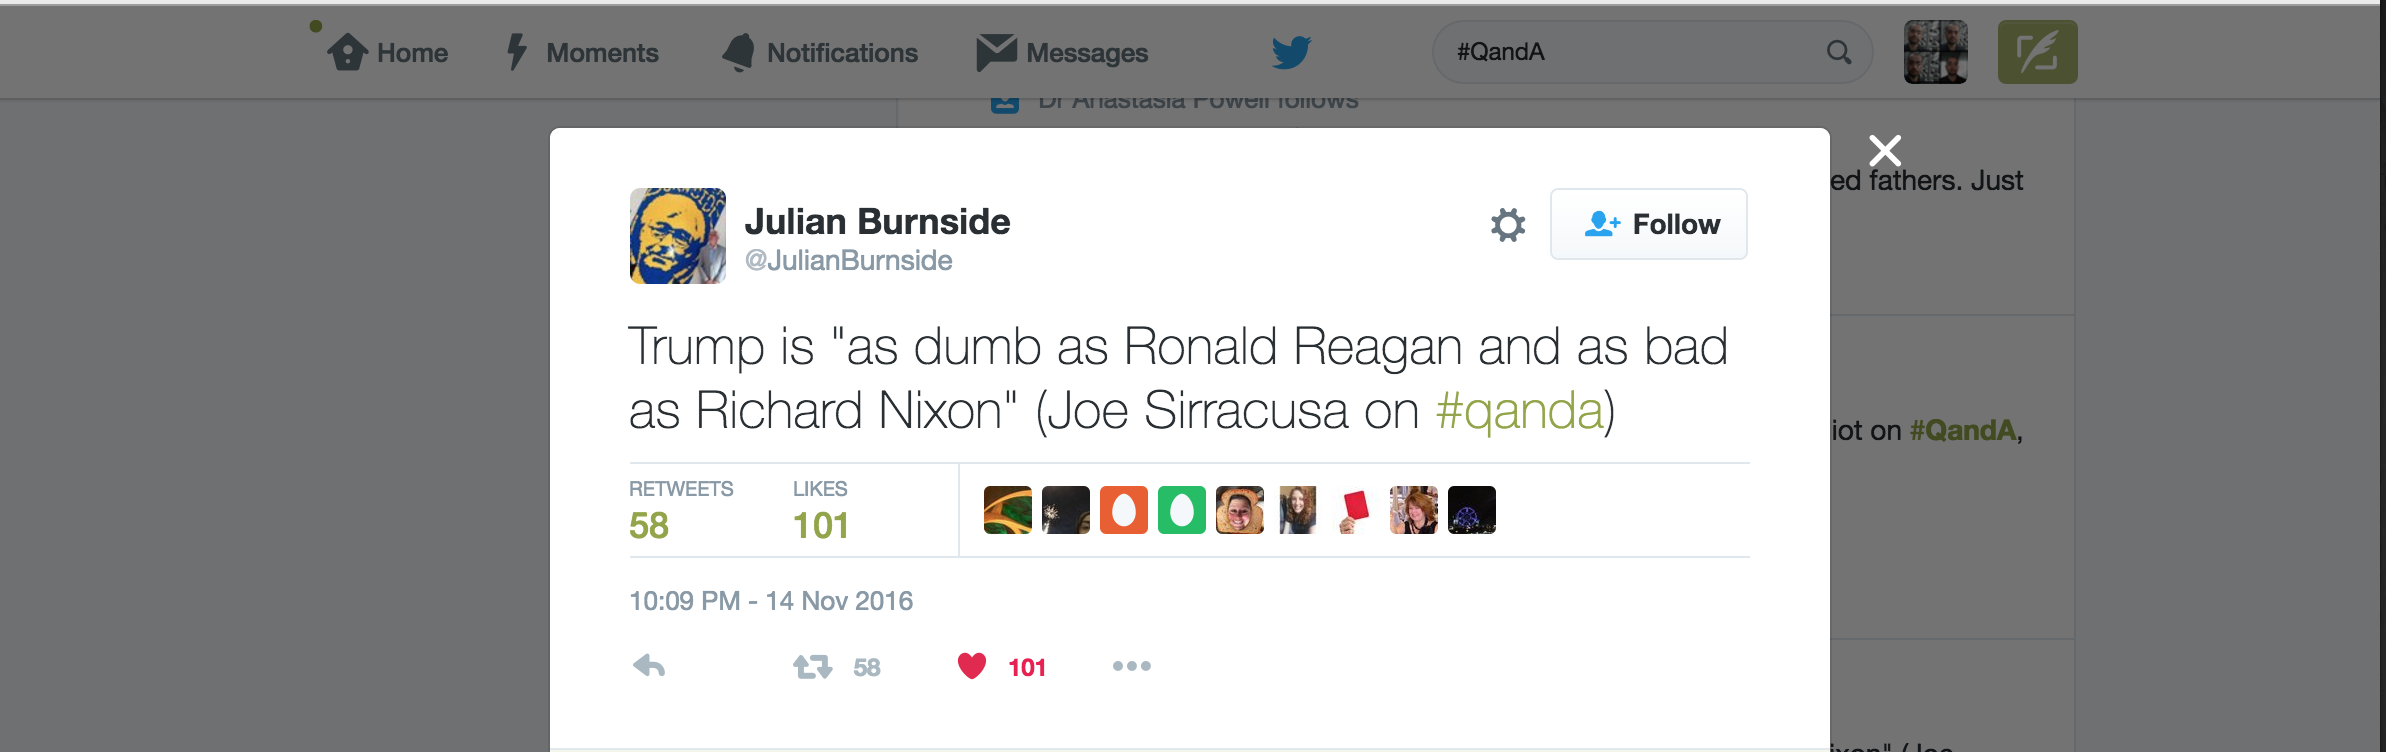 Joe was quoted in a Tweet by Julian Burnside QC.